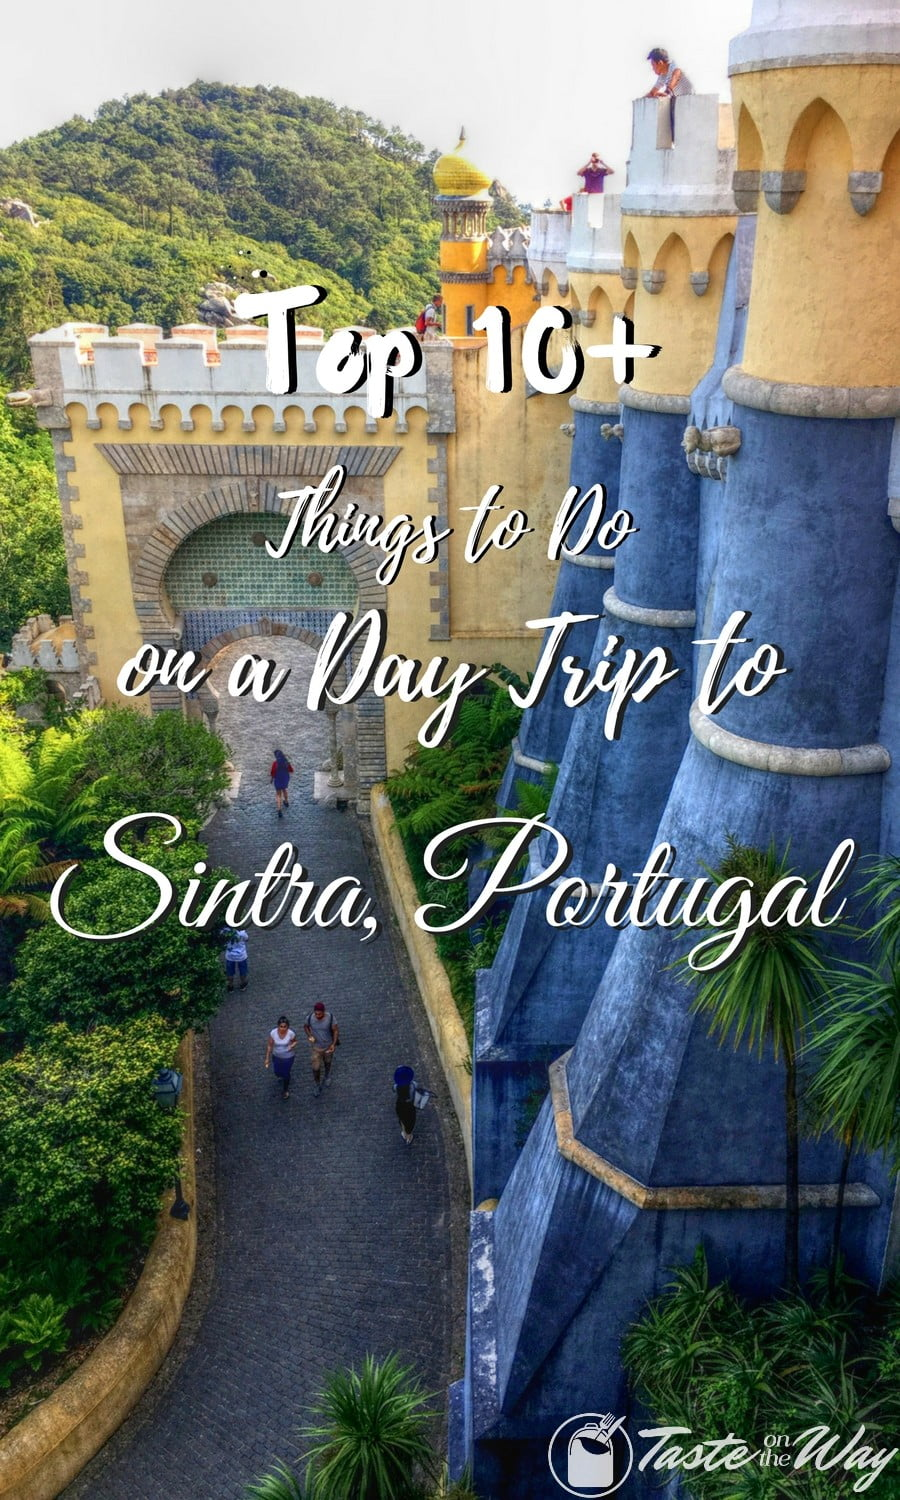 Check out top 10+ things to do on a #daytrip to #Sintra, #Portugal #travel #photography @tasteontheway